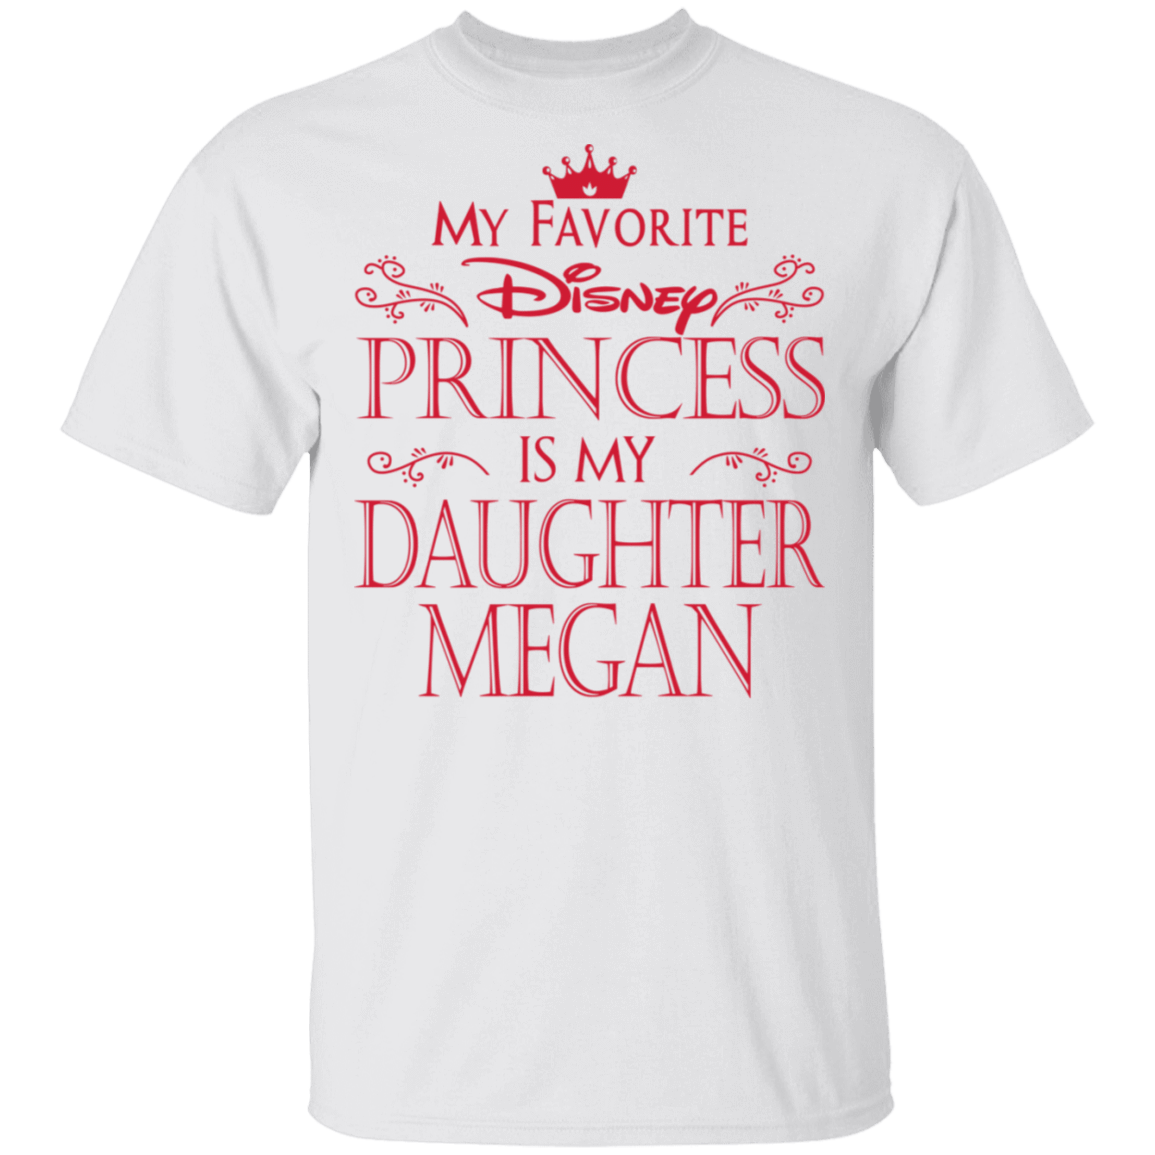 My Favorite Disney Princess Is My Daughter Megan T-Shirts, Hoodies, Tank 1049-9974-81647389-48300 - Tee Ript